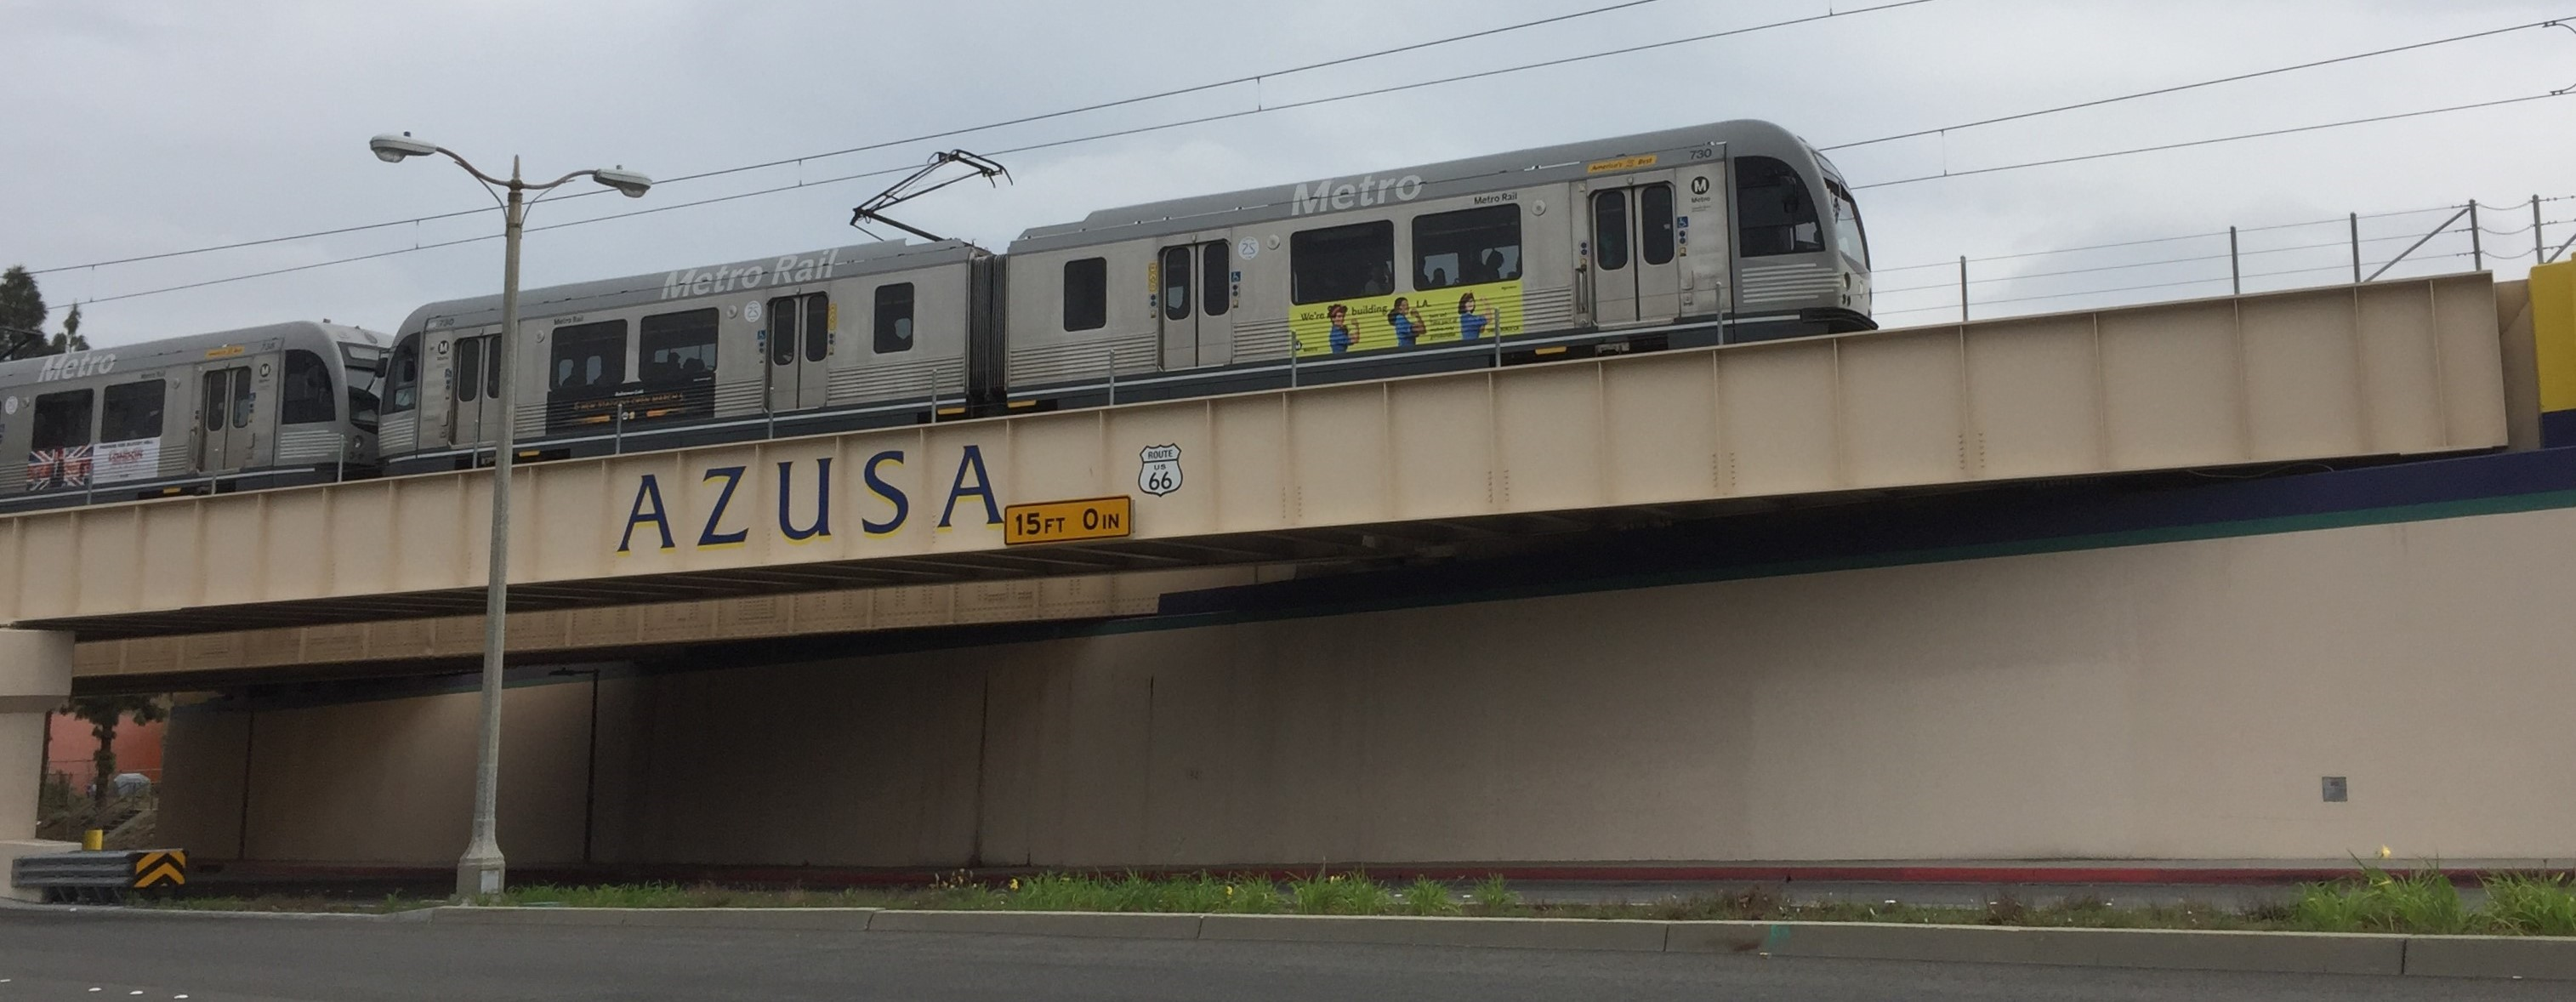 The Metro Gold Line has arrived in Azusa. Photos by Joe Linton/Streetsblog L.A. except where noted